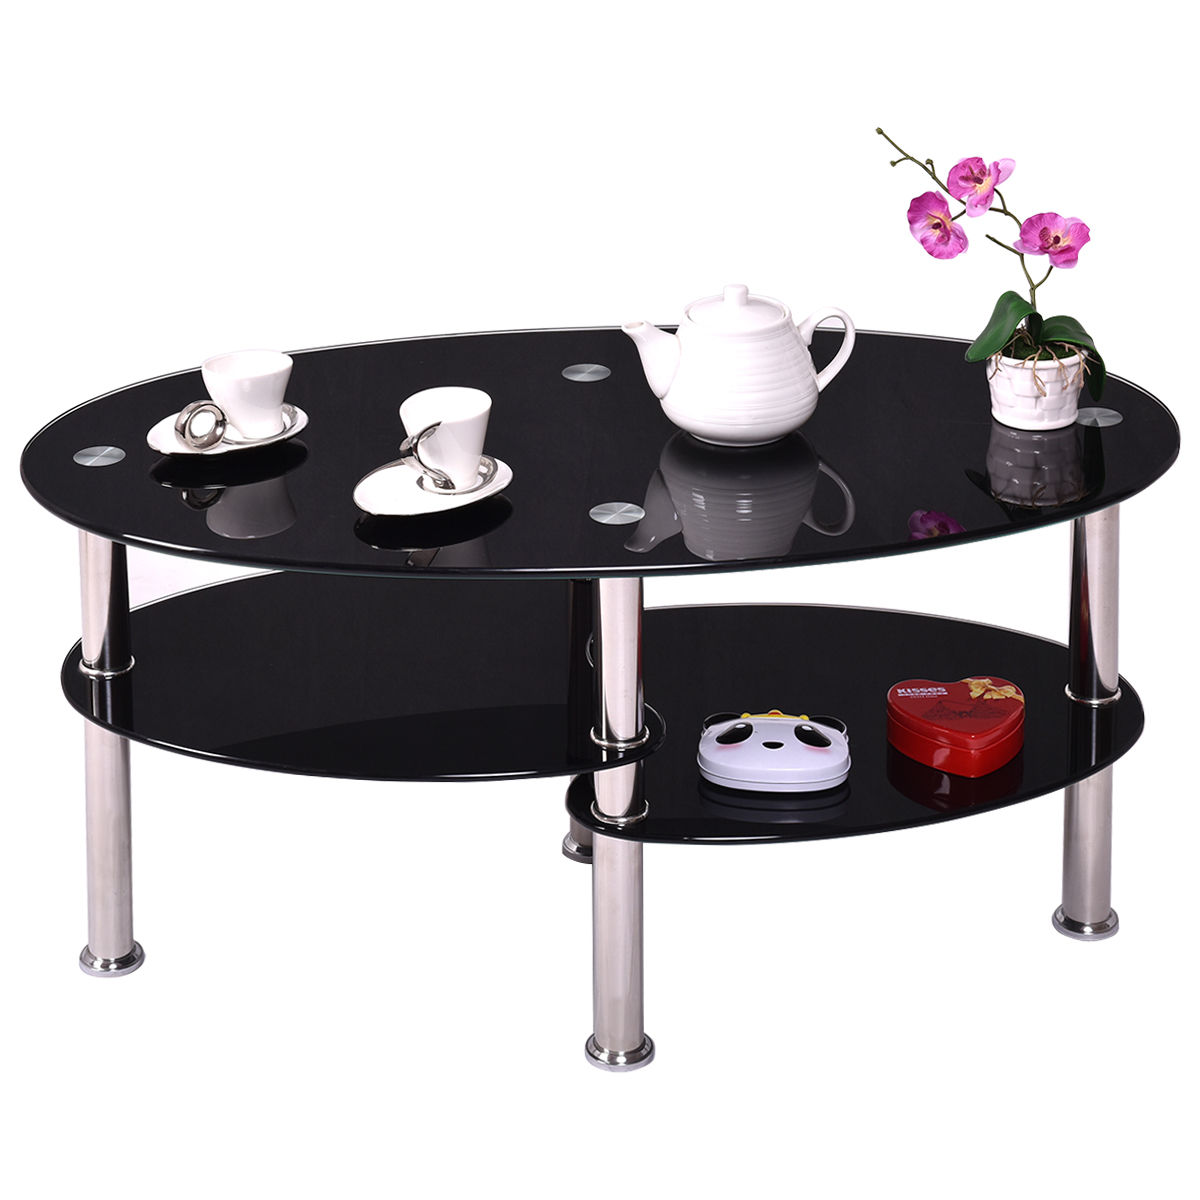 Black Glass Oval Coffee Table Side Shelf Chrome Base